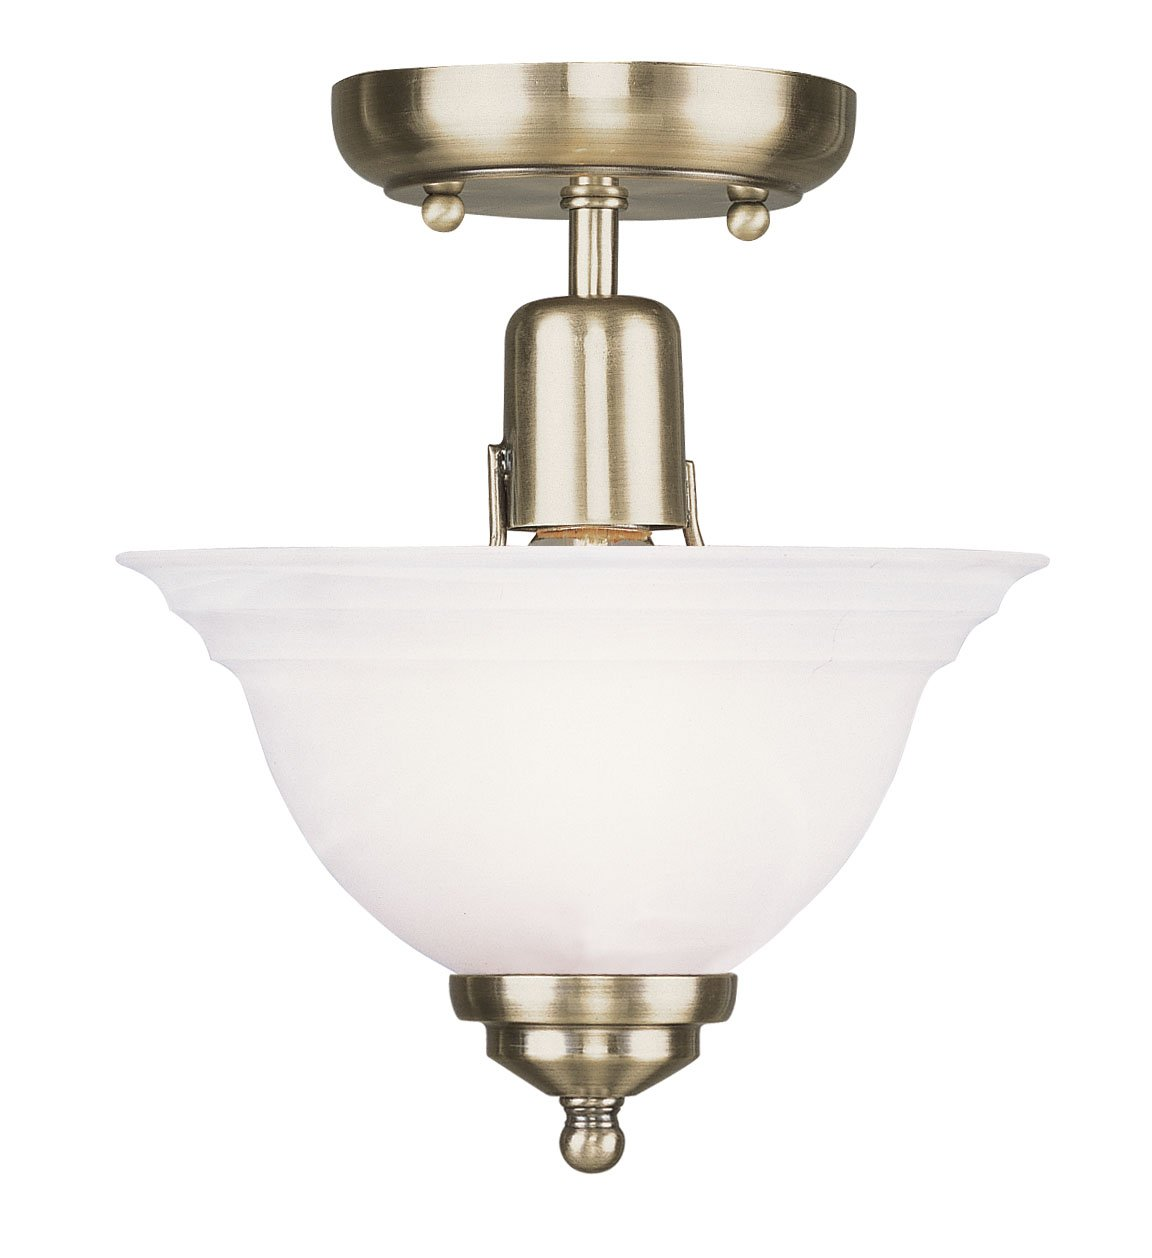 Livex Lighting 4250-01 Flush Mount with White Alabaster Glass Shades, Antique Brass